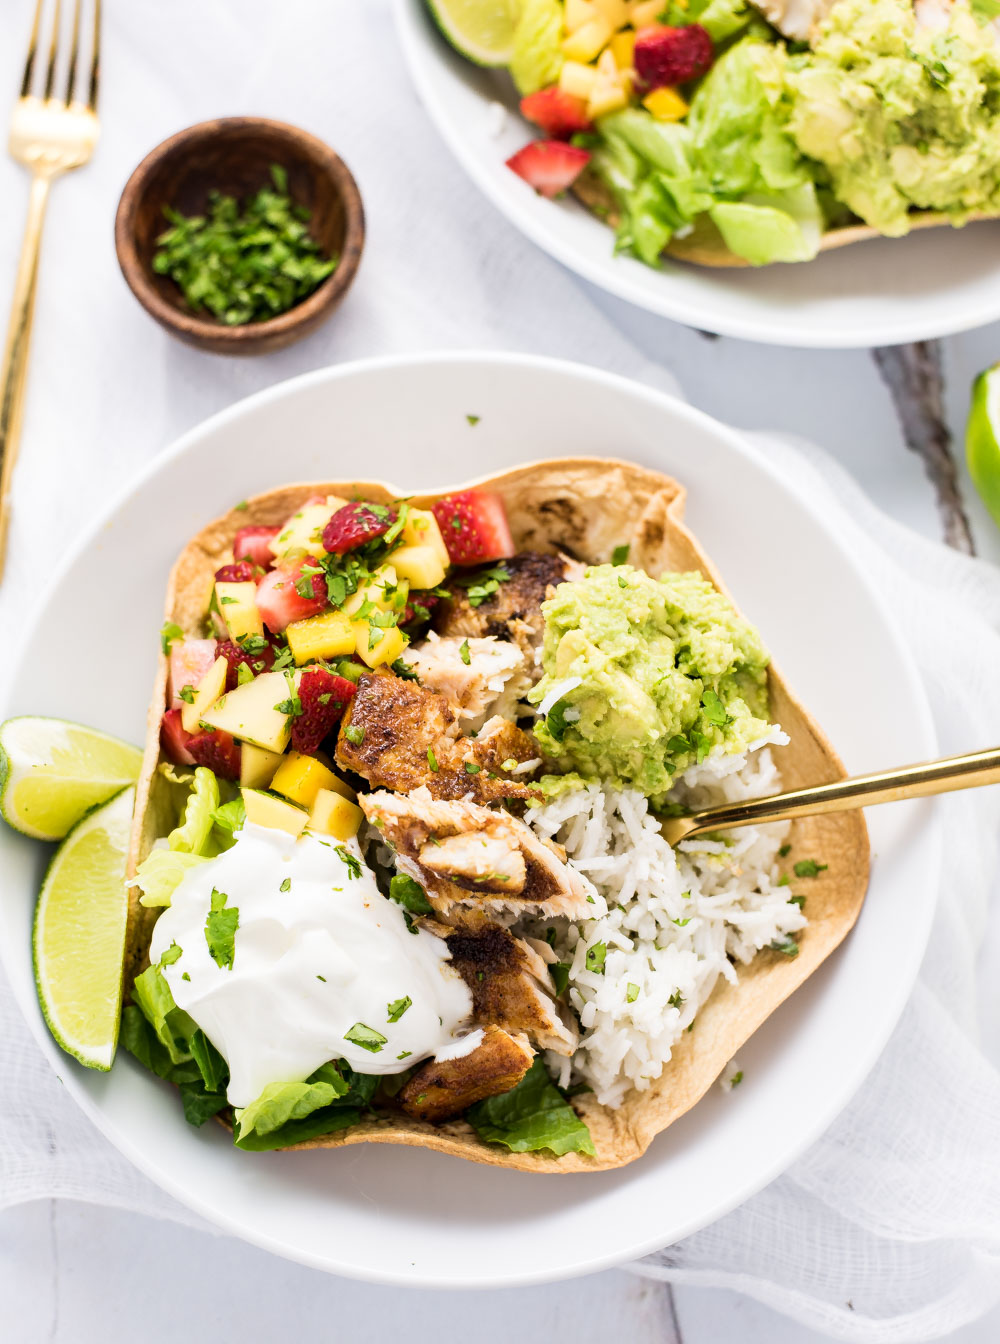 Grilled Fish Taco Burrito Bowls are the perfect weeknight meal. They are a fun twist on Taco Tuesday!